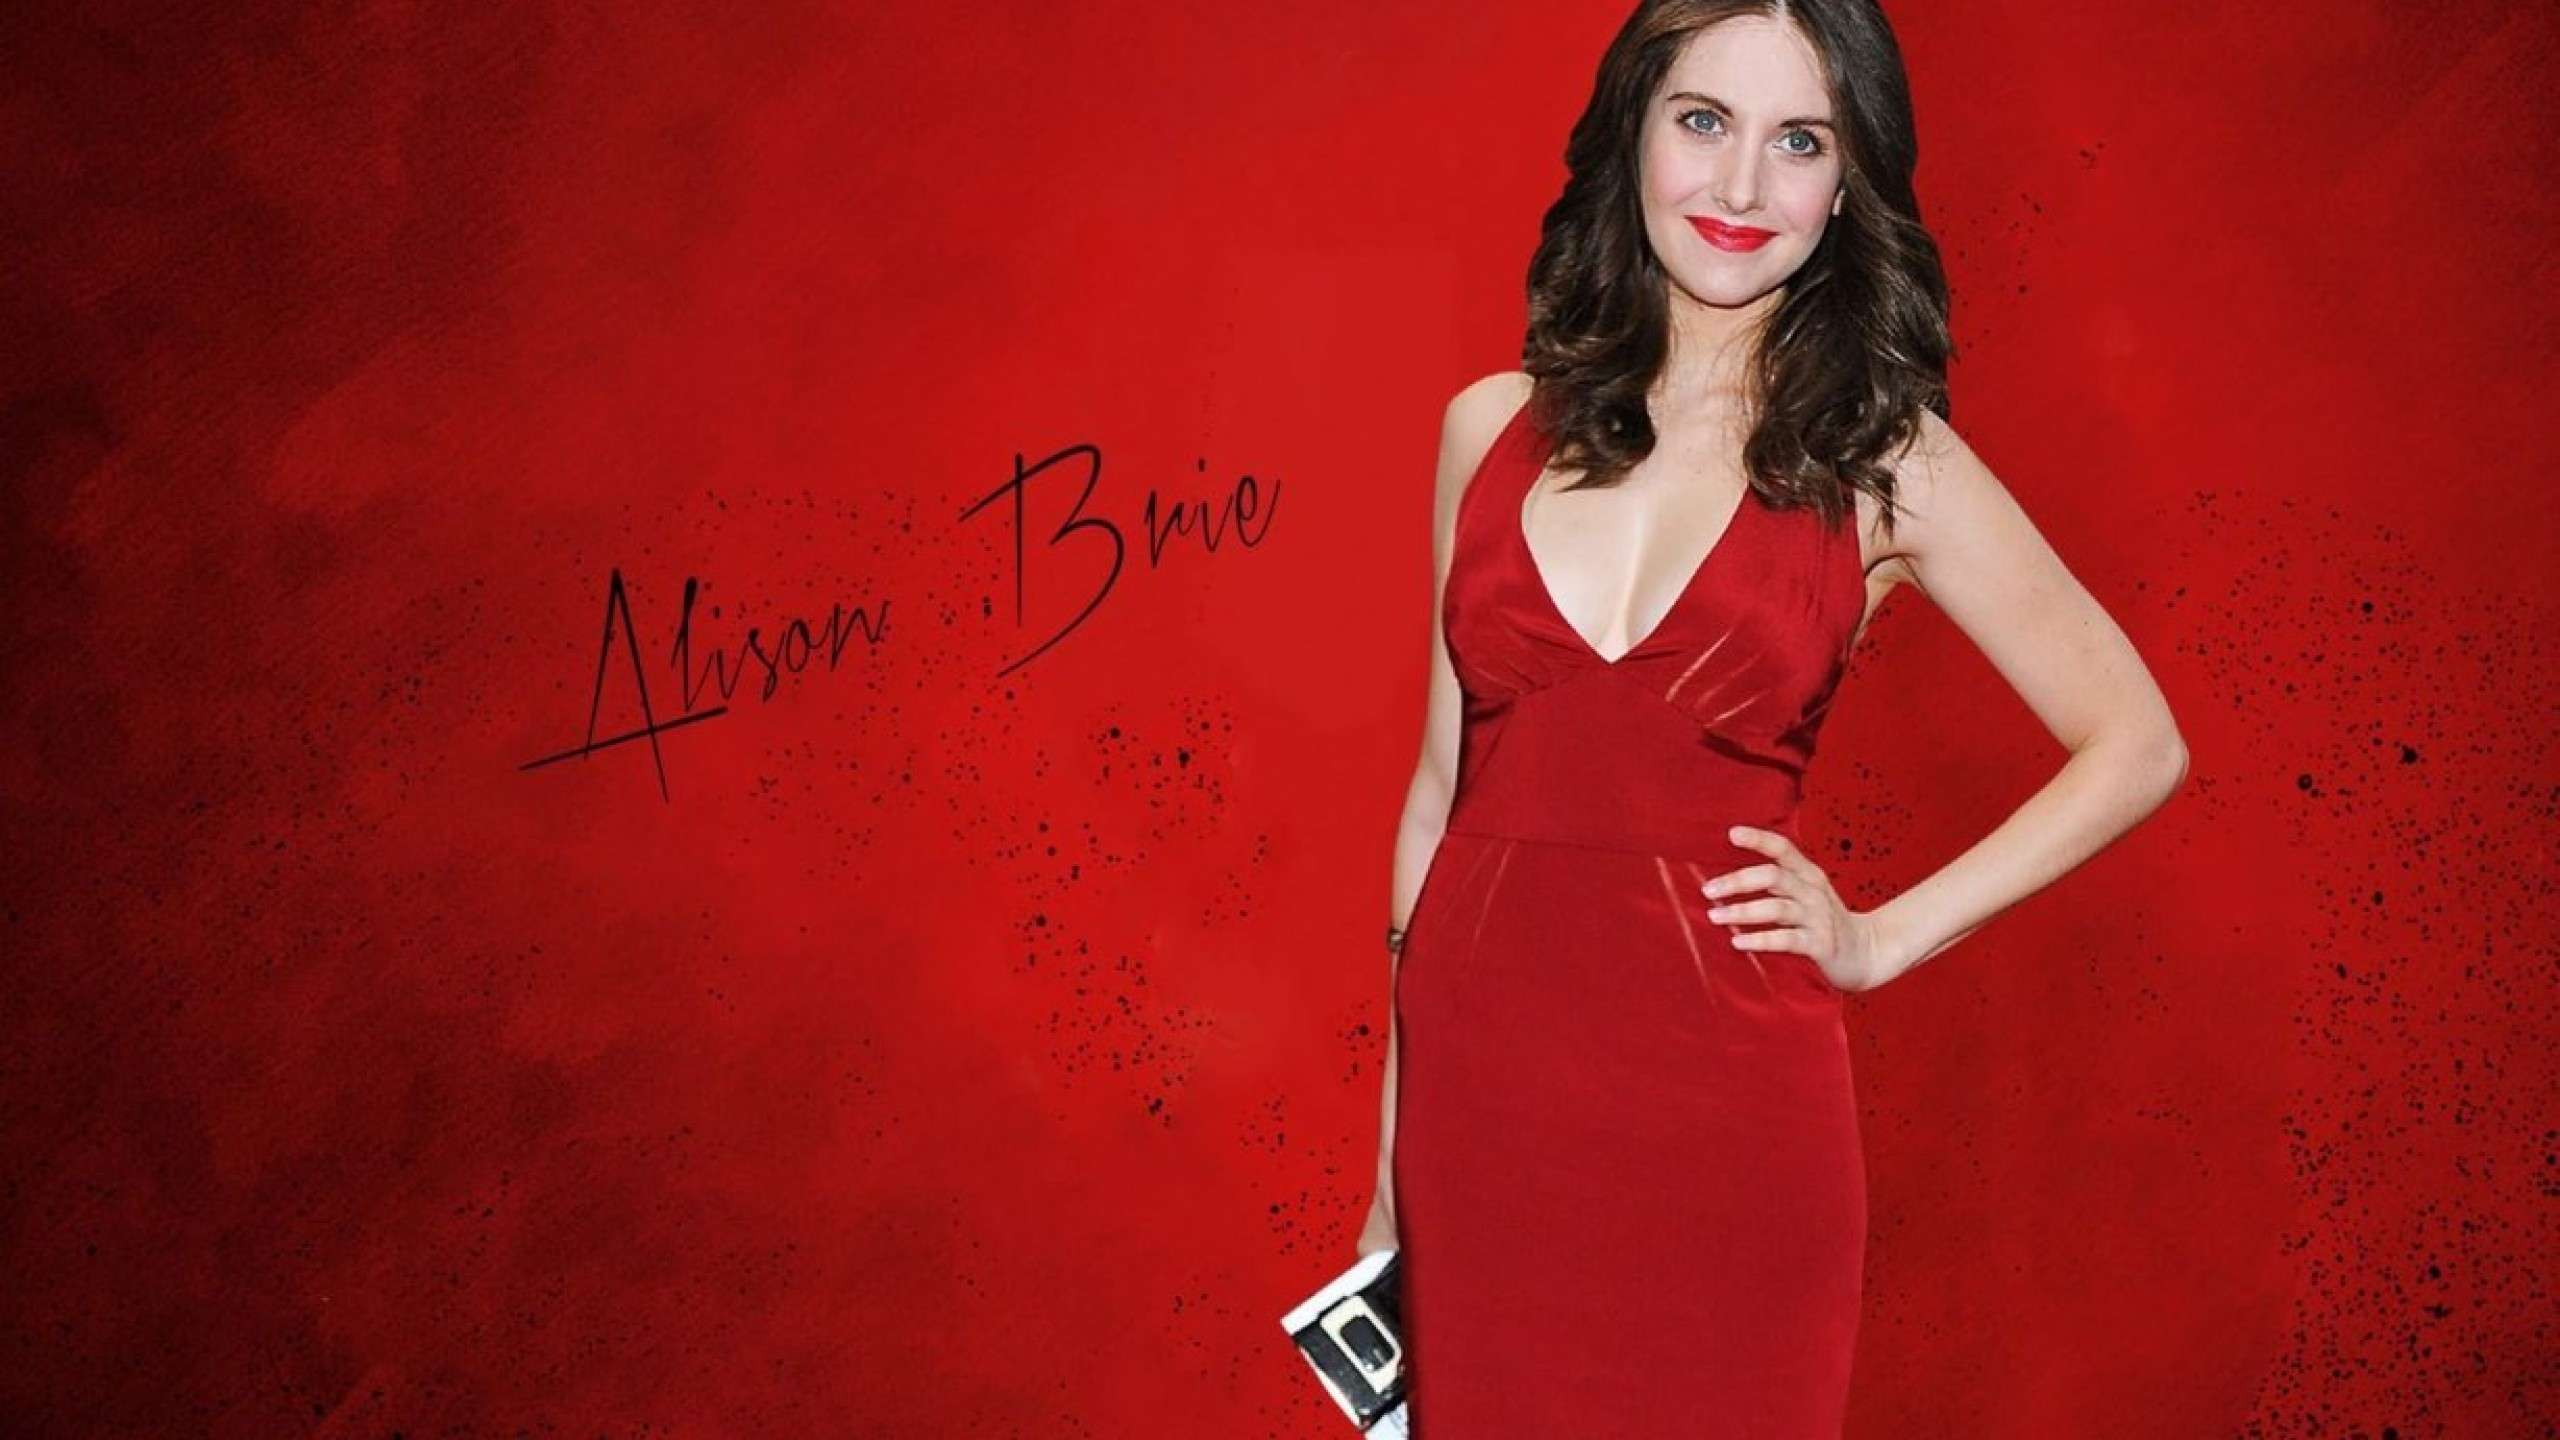 Gorgeous Alison Brie Wallpaper | Full HD Pictures